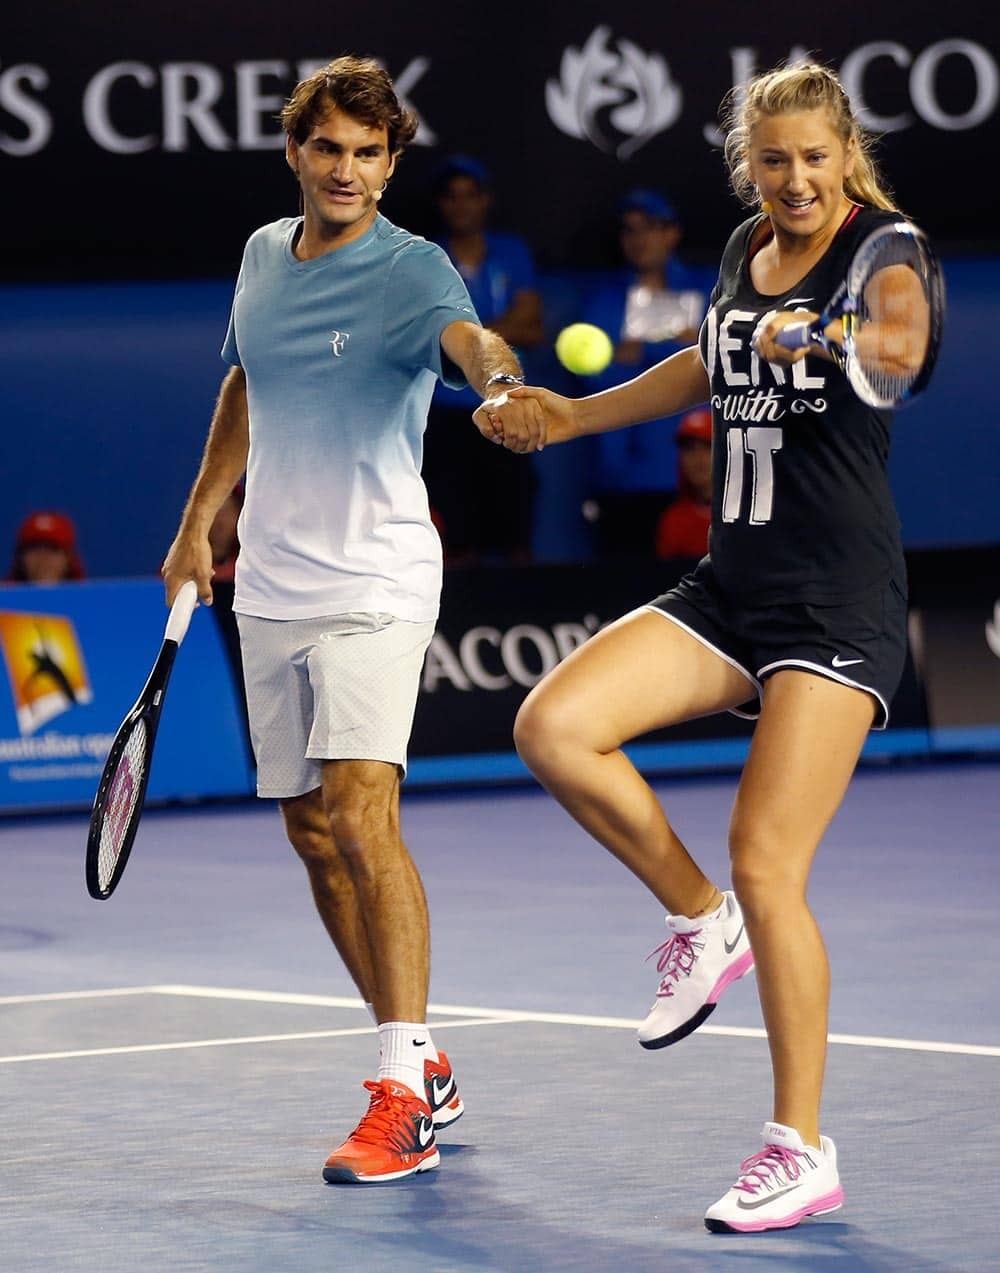 Victoria Azarenka of Belarus plays a shot as she holds hands with Switzerland's Roger Federer during an exhibition match on Kids Tennis Day ahead of the Australian Open tennis championship in Melbourne.